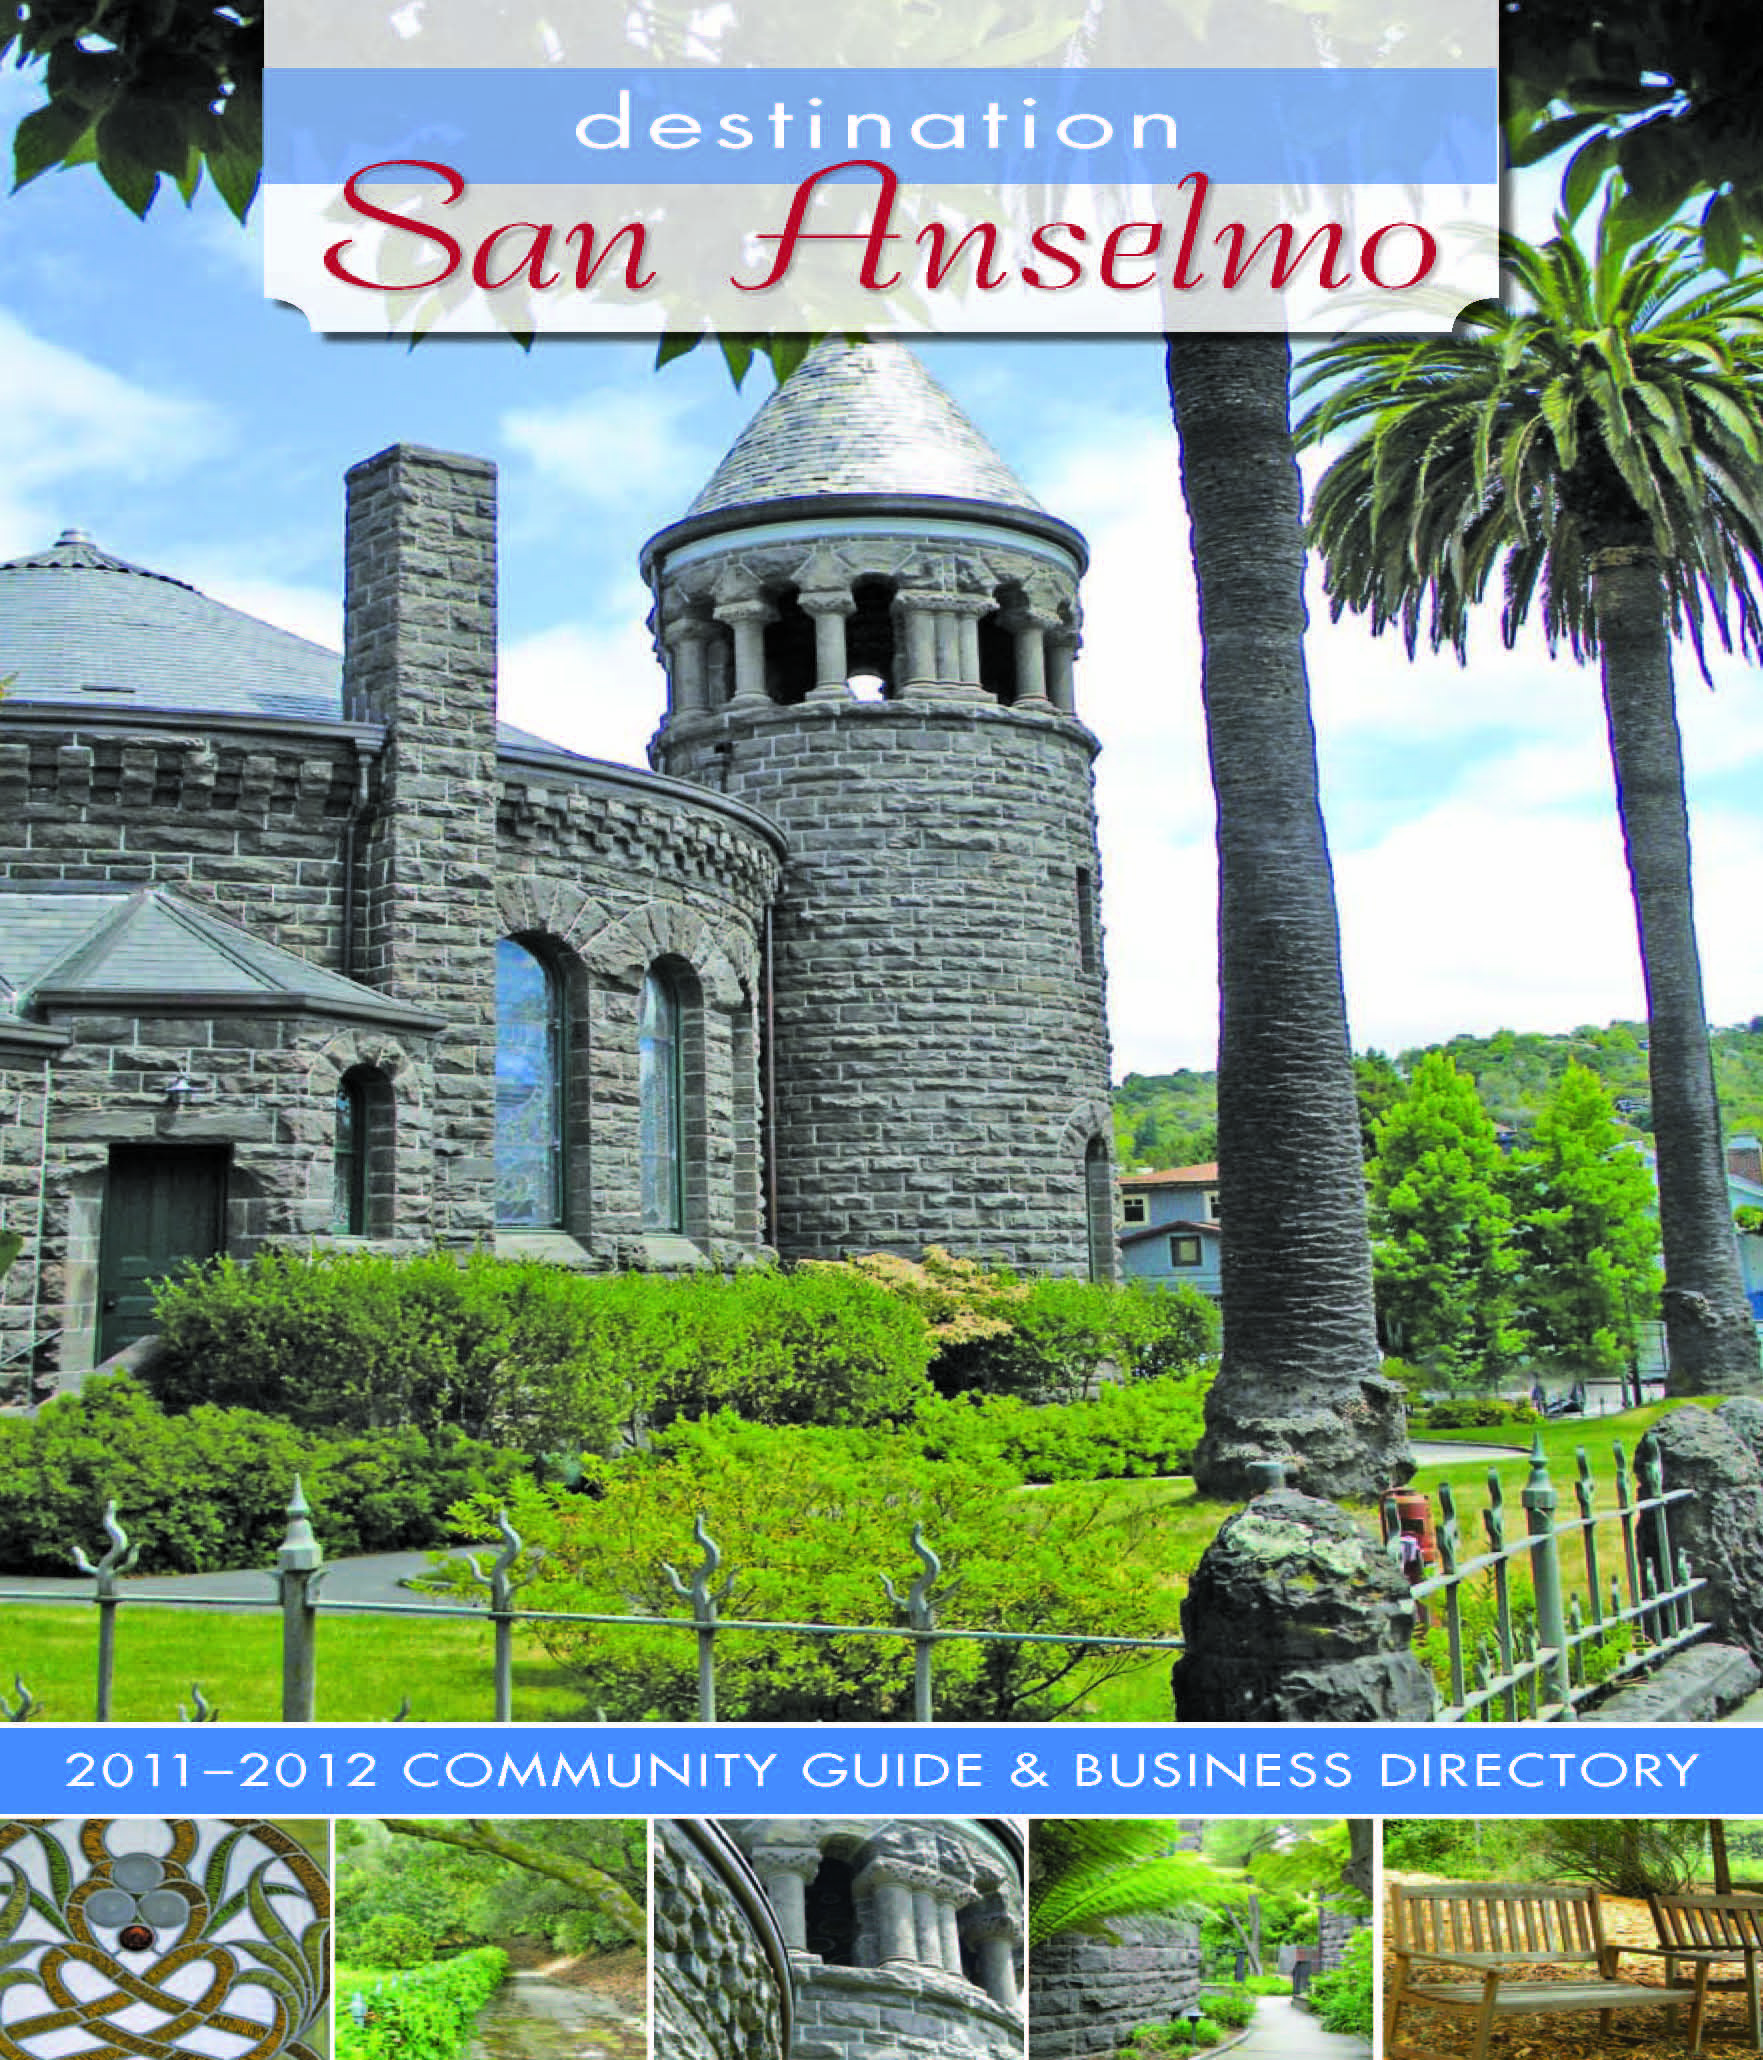 Destination San Anselmo 2011-2012